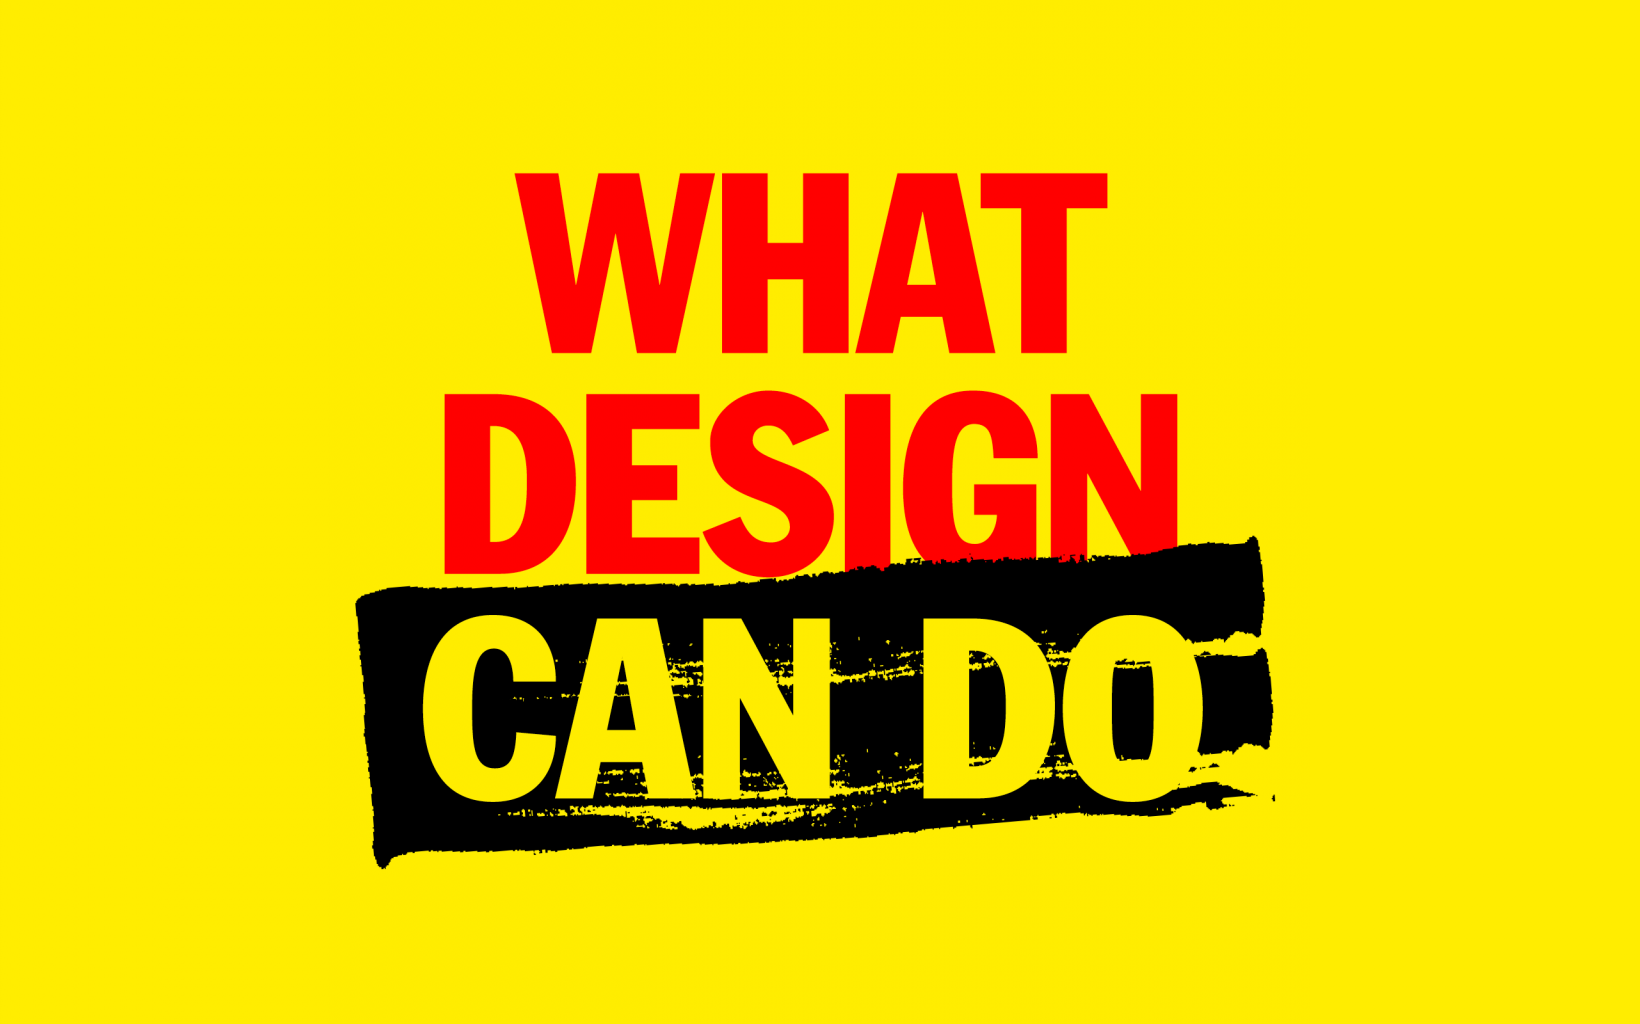 About What Design Can Do